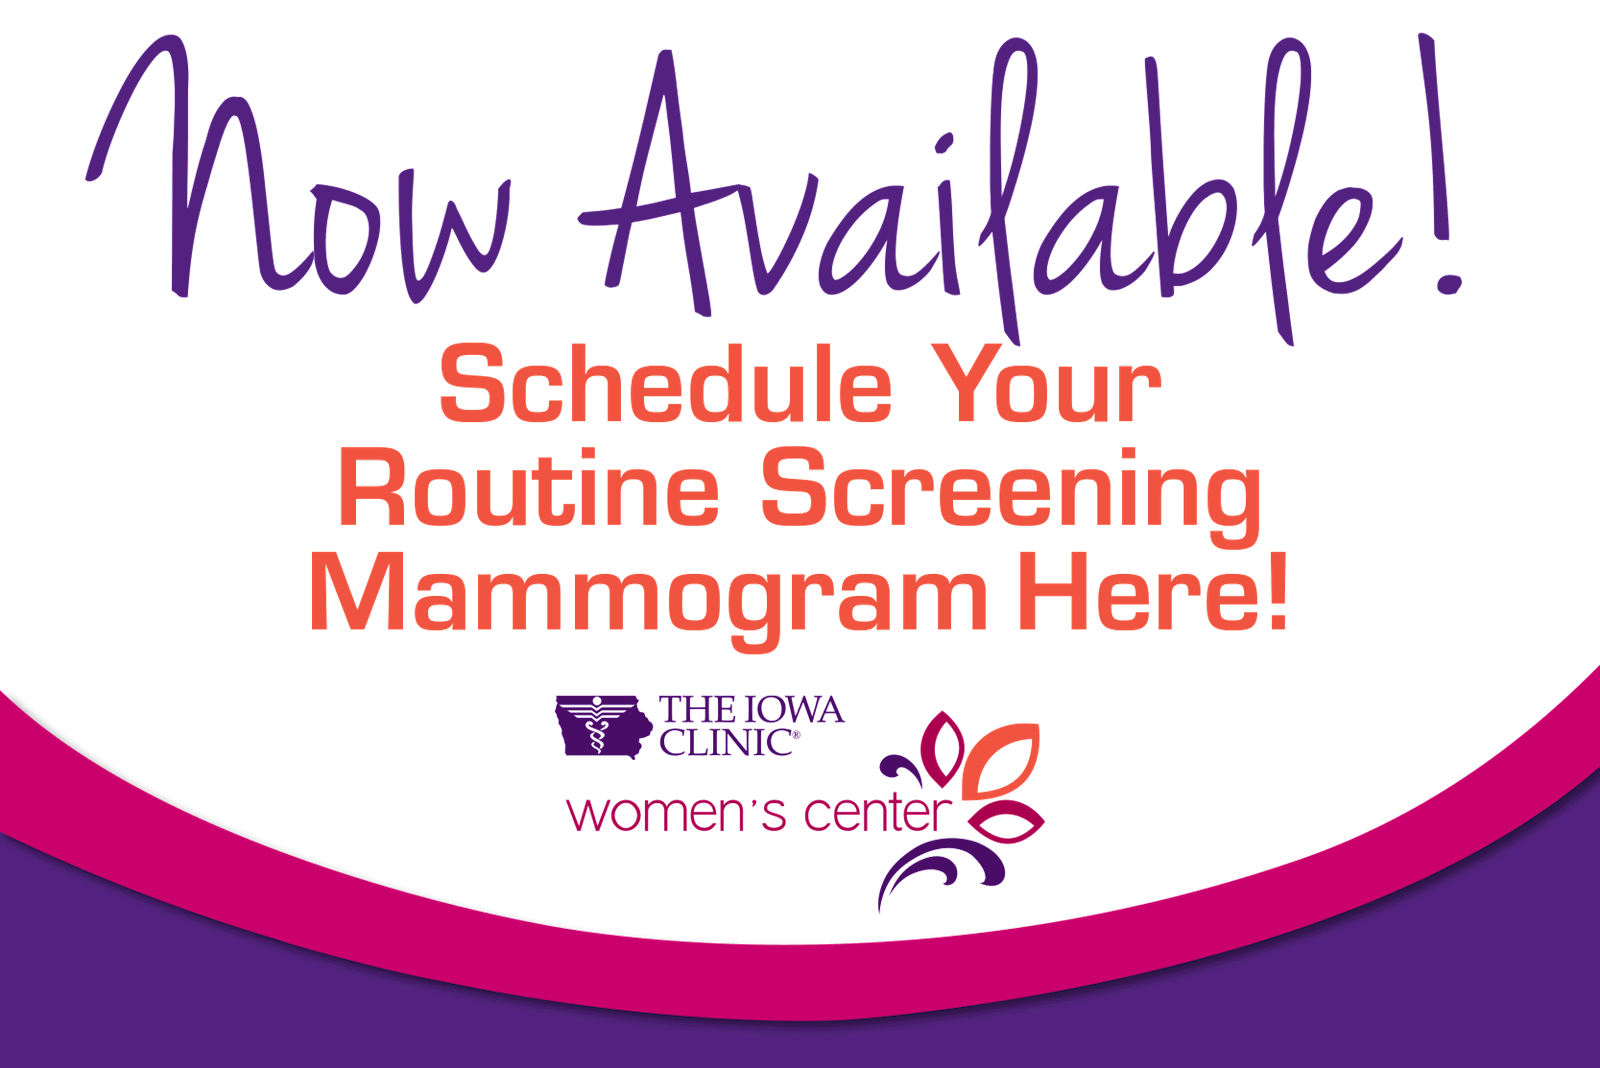 Schedule your routine mammogram online with The Iowa Clinic